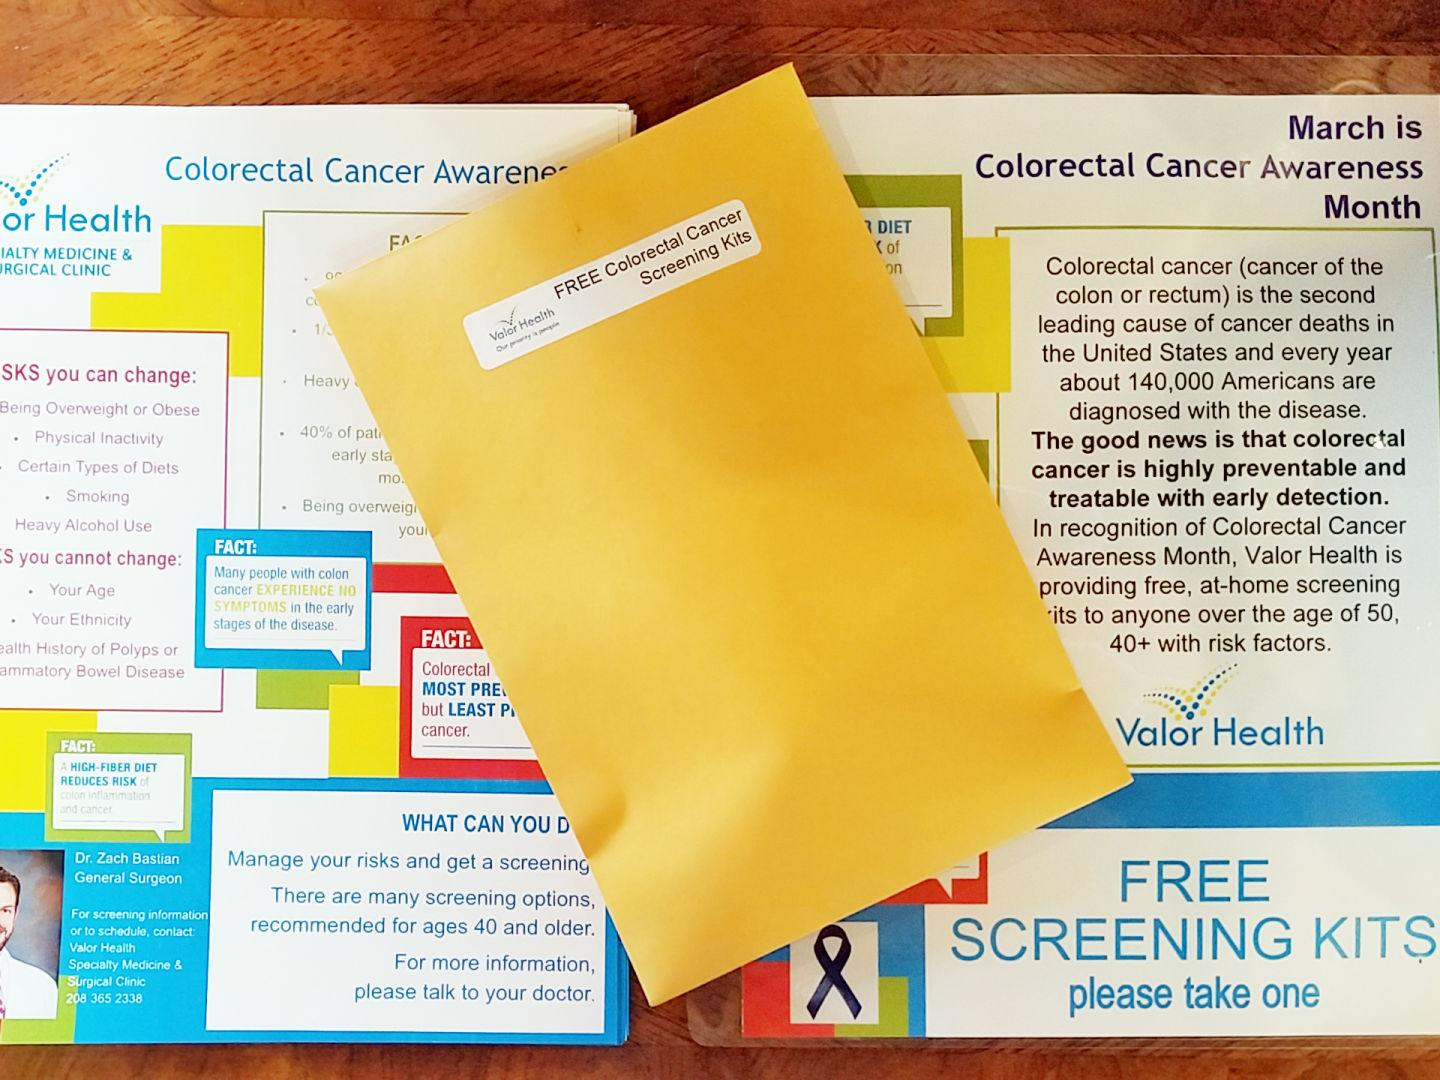 Taking Preventative Action On Colorectal Cancer Local News Idahopress Com